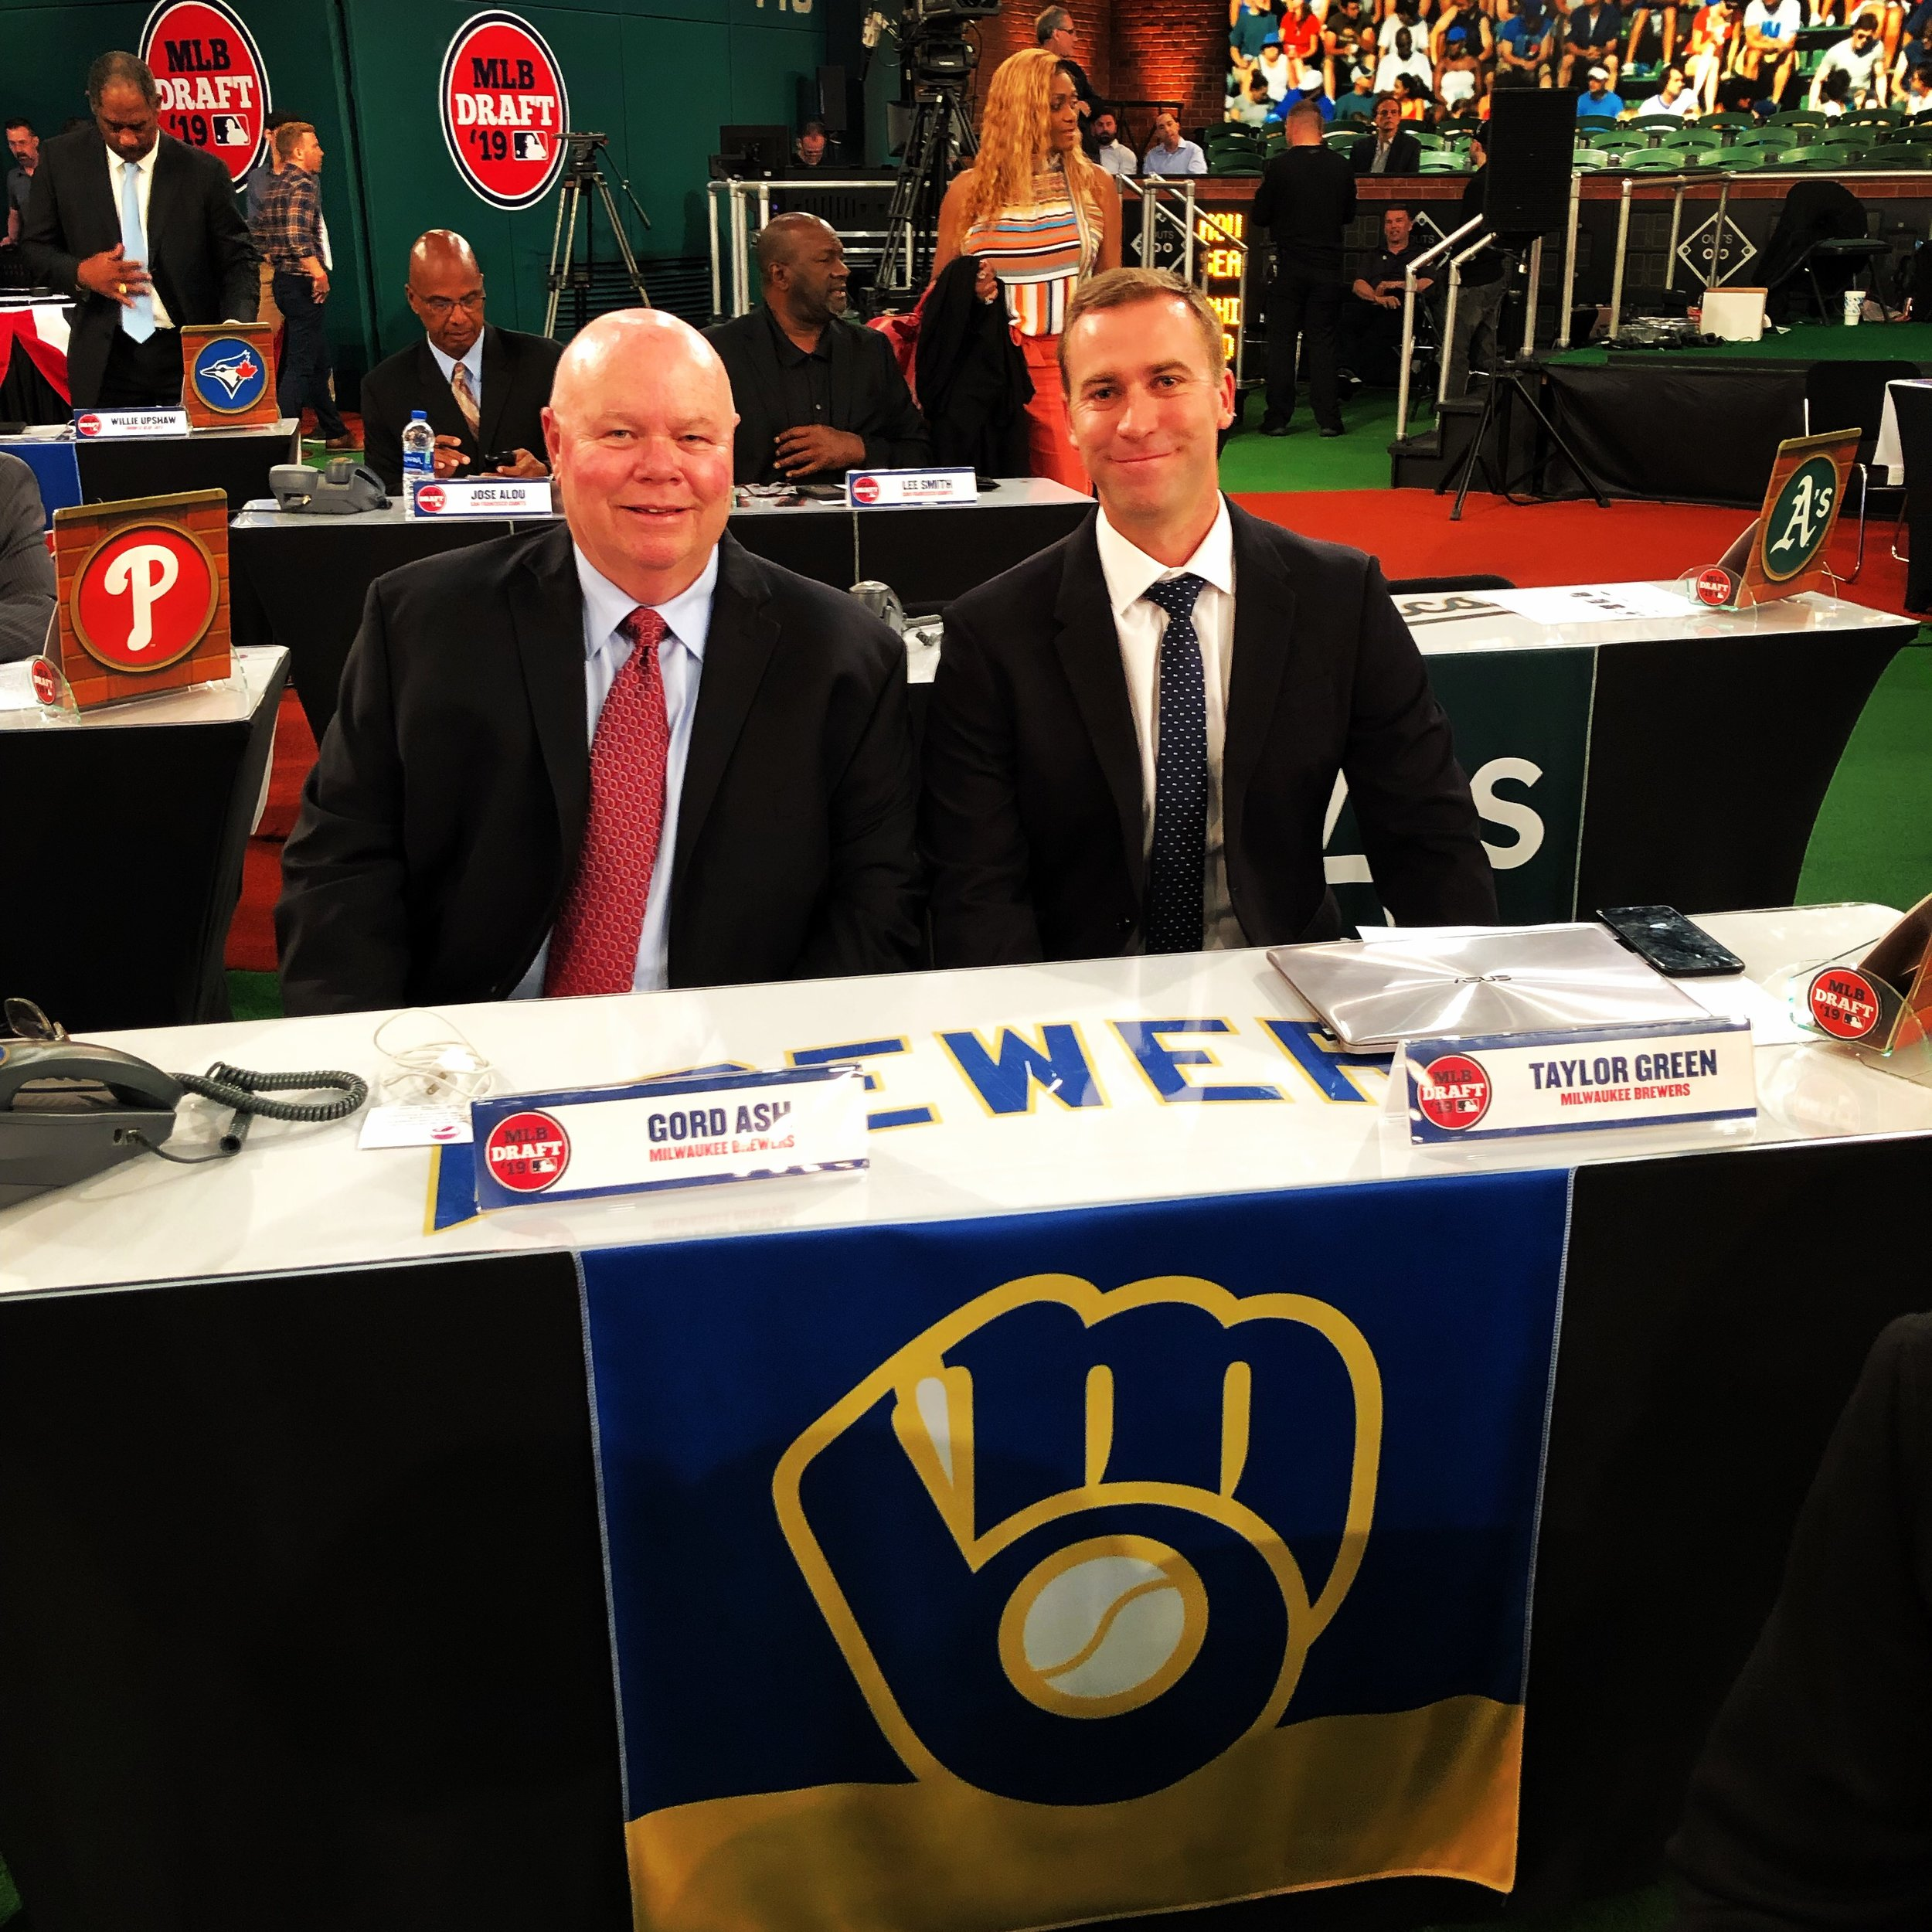 """Says Gordon Ash, left: """"Taylor Green and I rep the Brewers and We the North."""""""